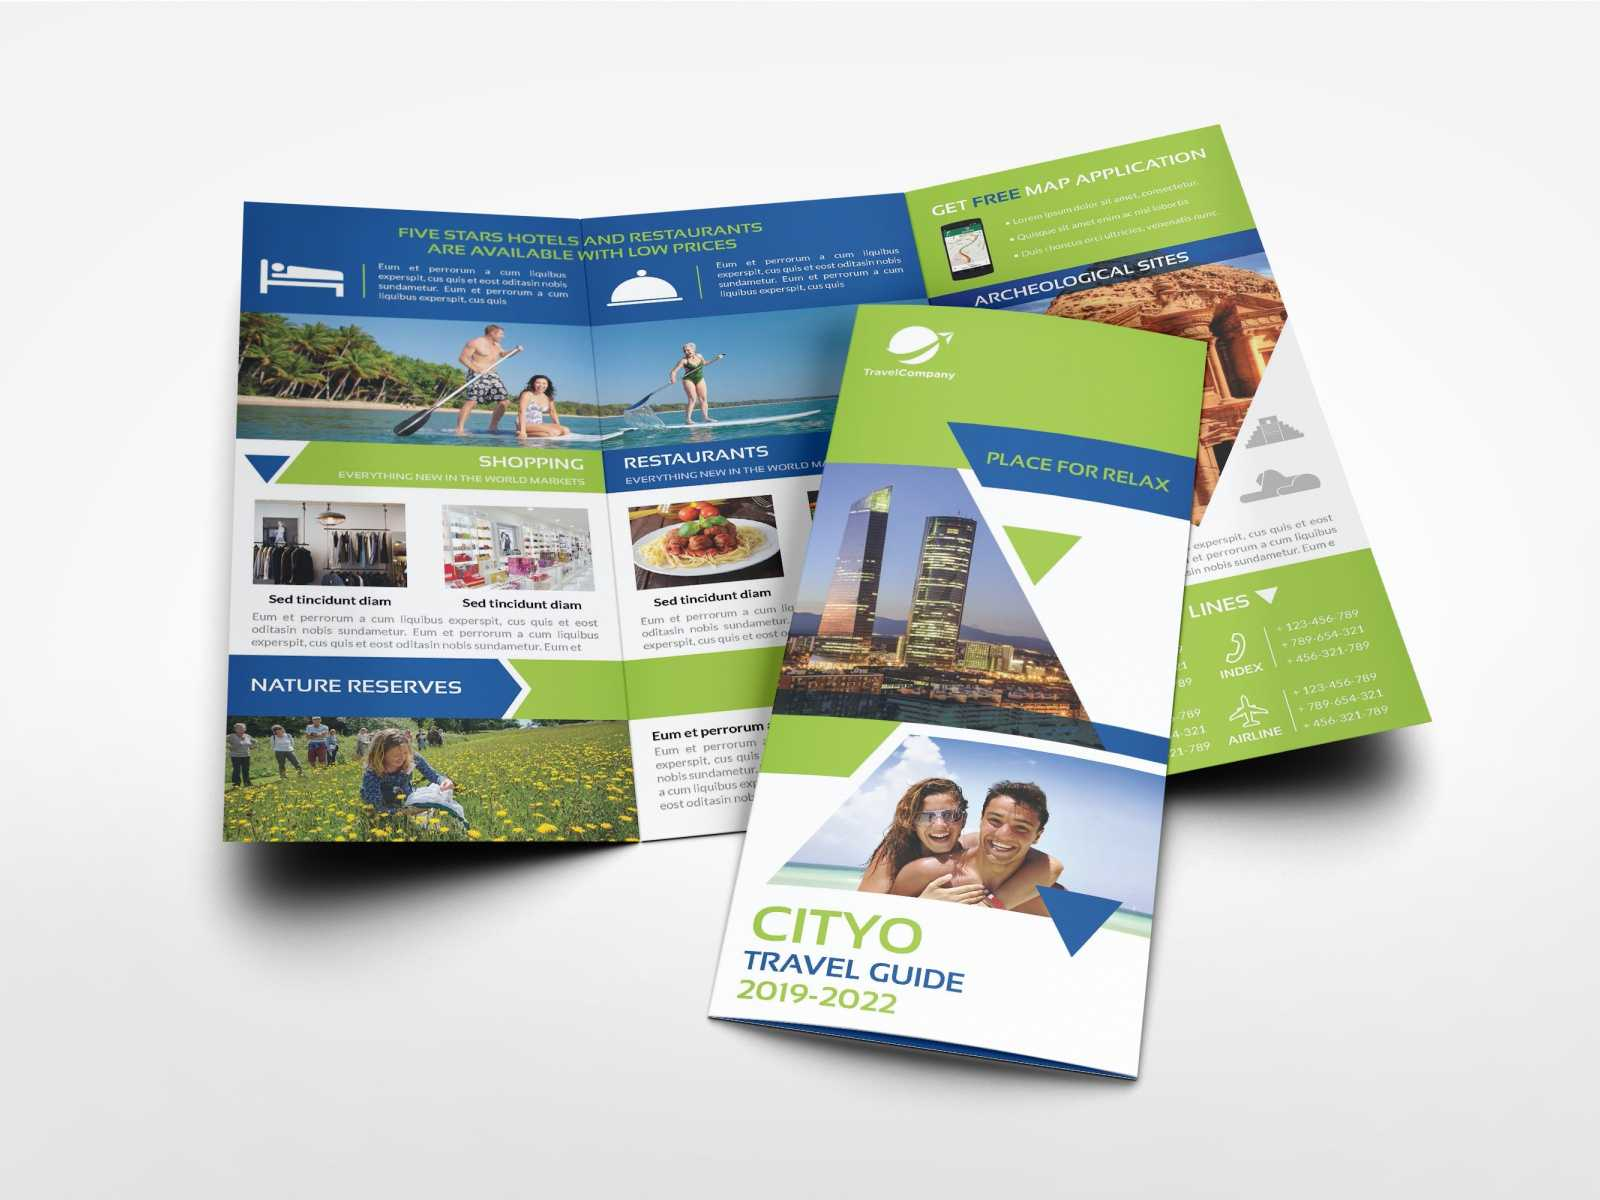 Travel Guide Tri Fold Brochure Templateowpictures On Inside Travel Guide Brochure Template